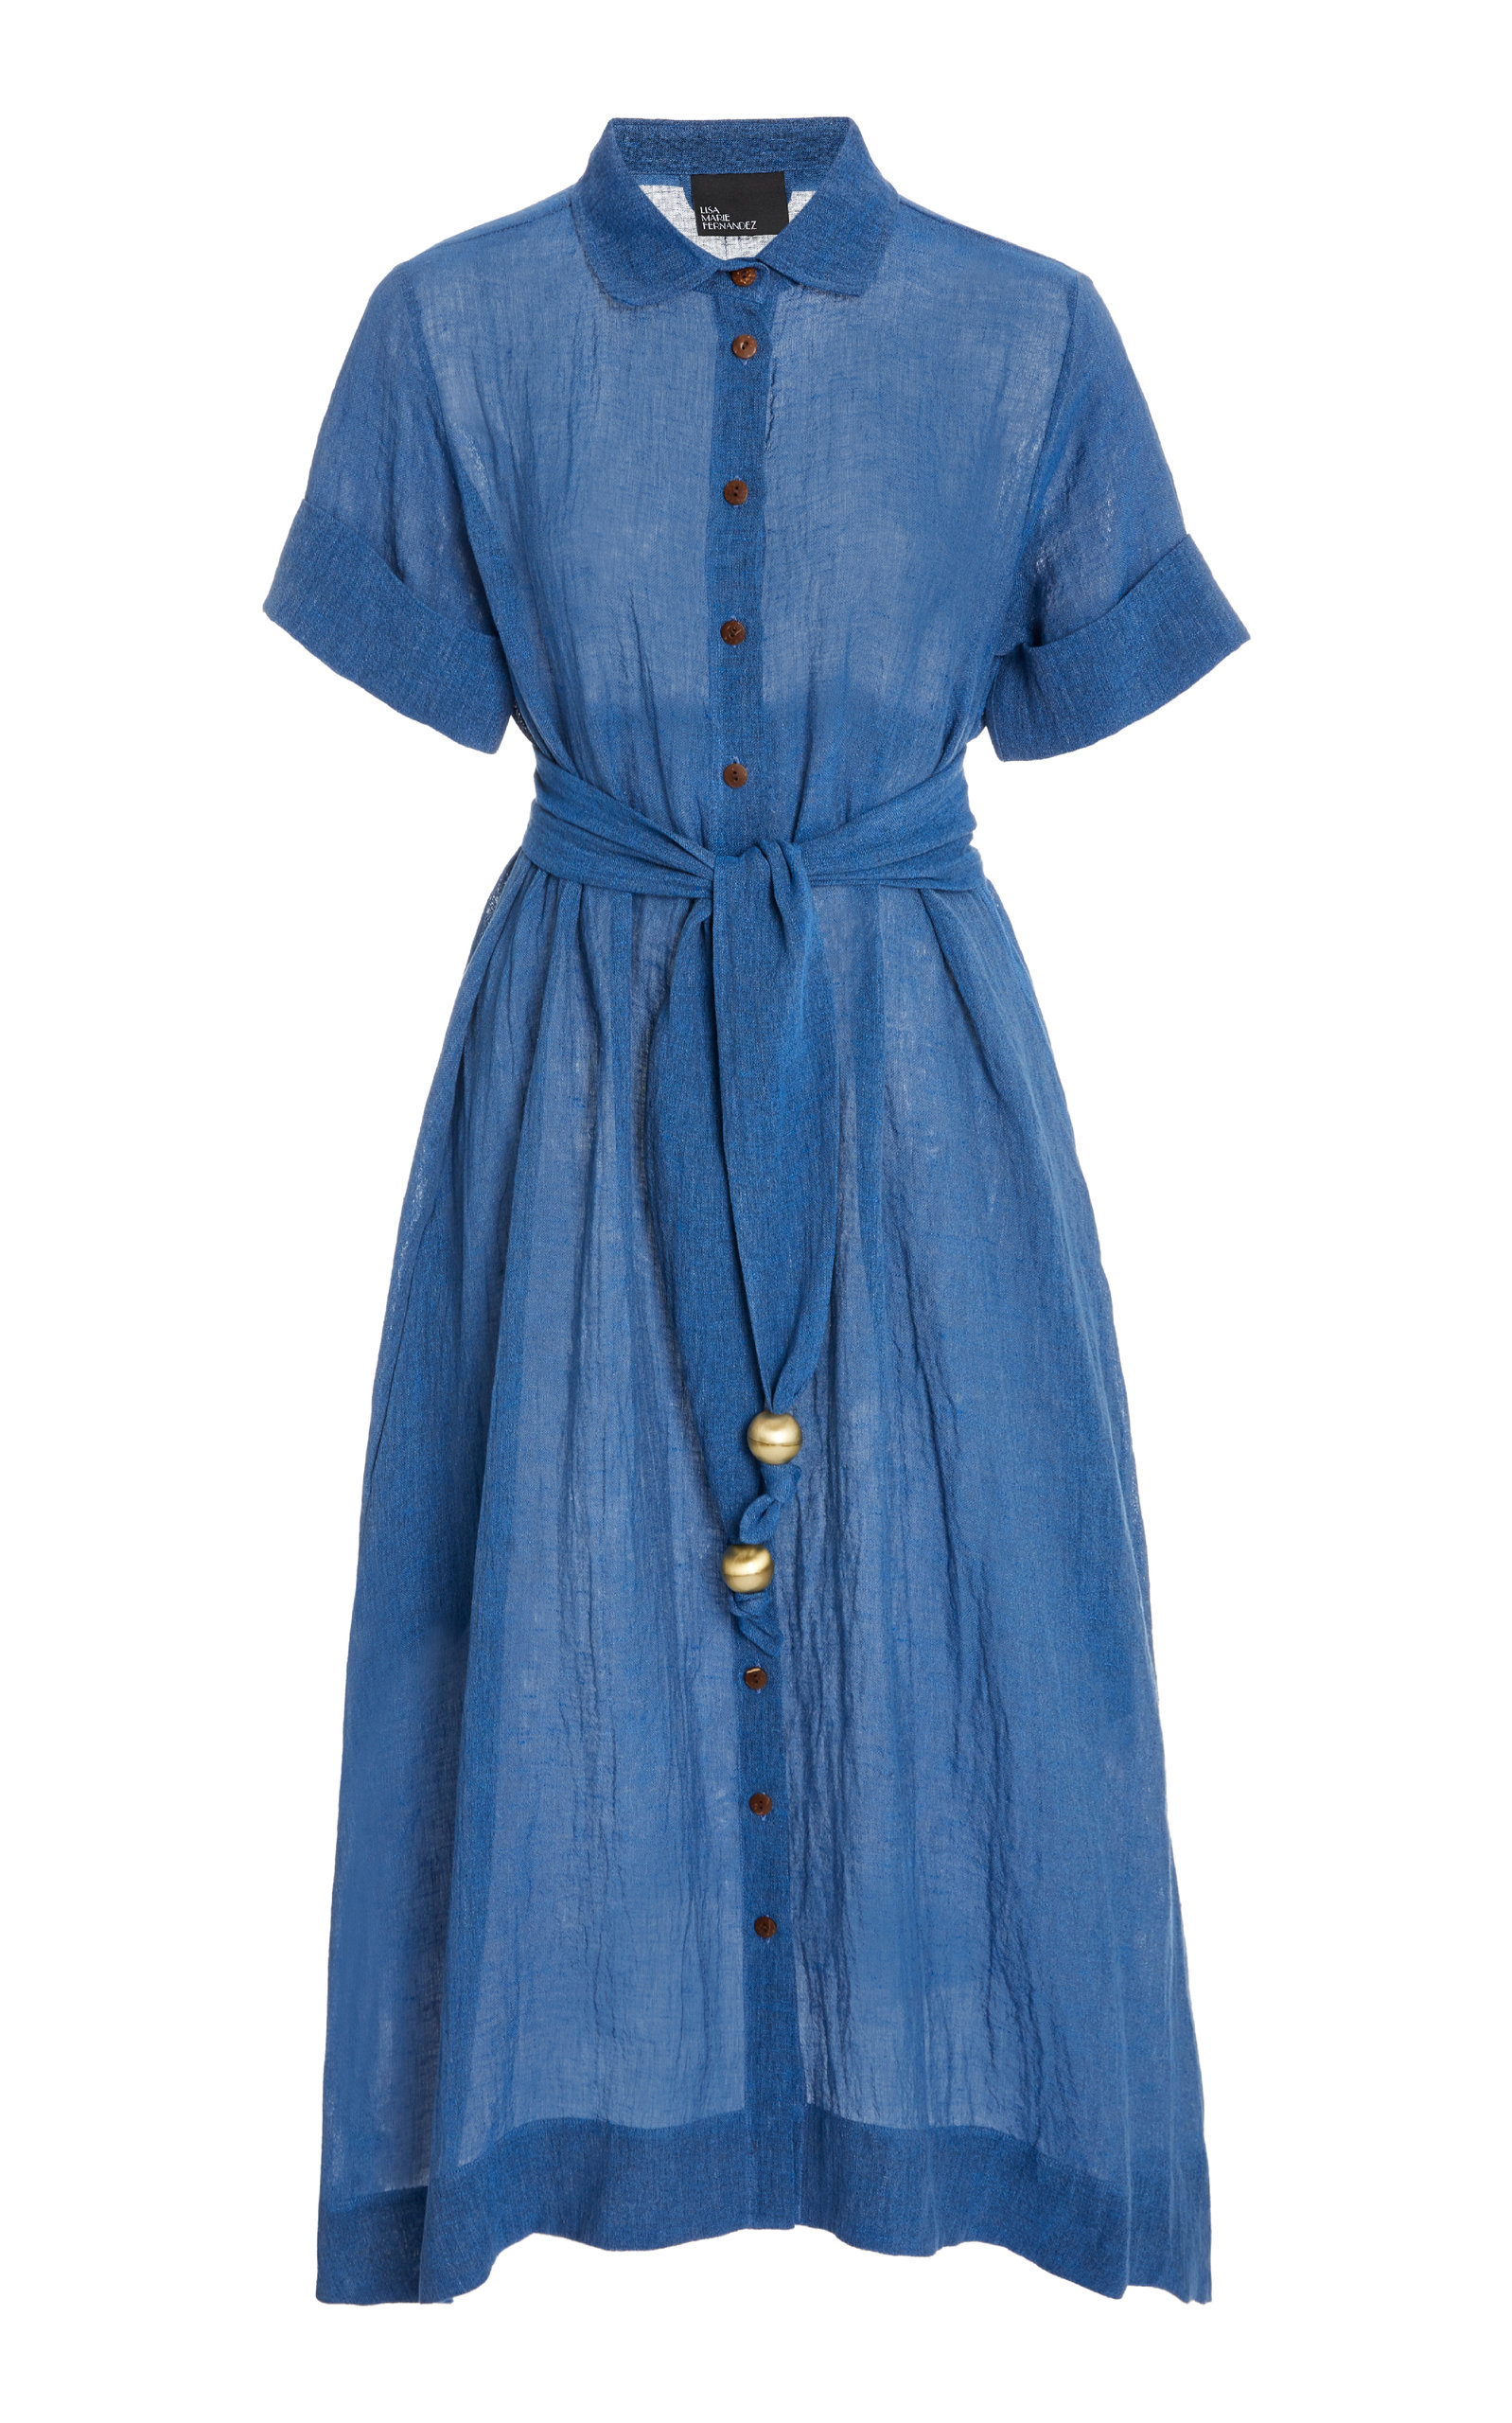 Buy Lisa Marie Fernandez Collared Classic Denim Shirt Dress online, shop Lisa Marie Fernandez at the best price